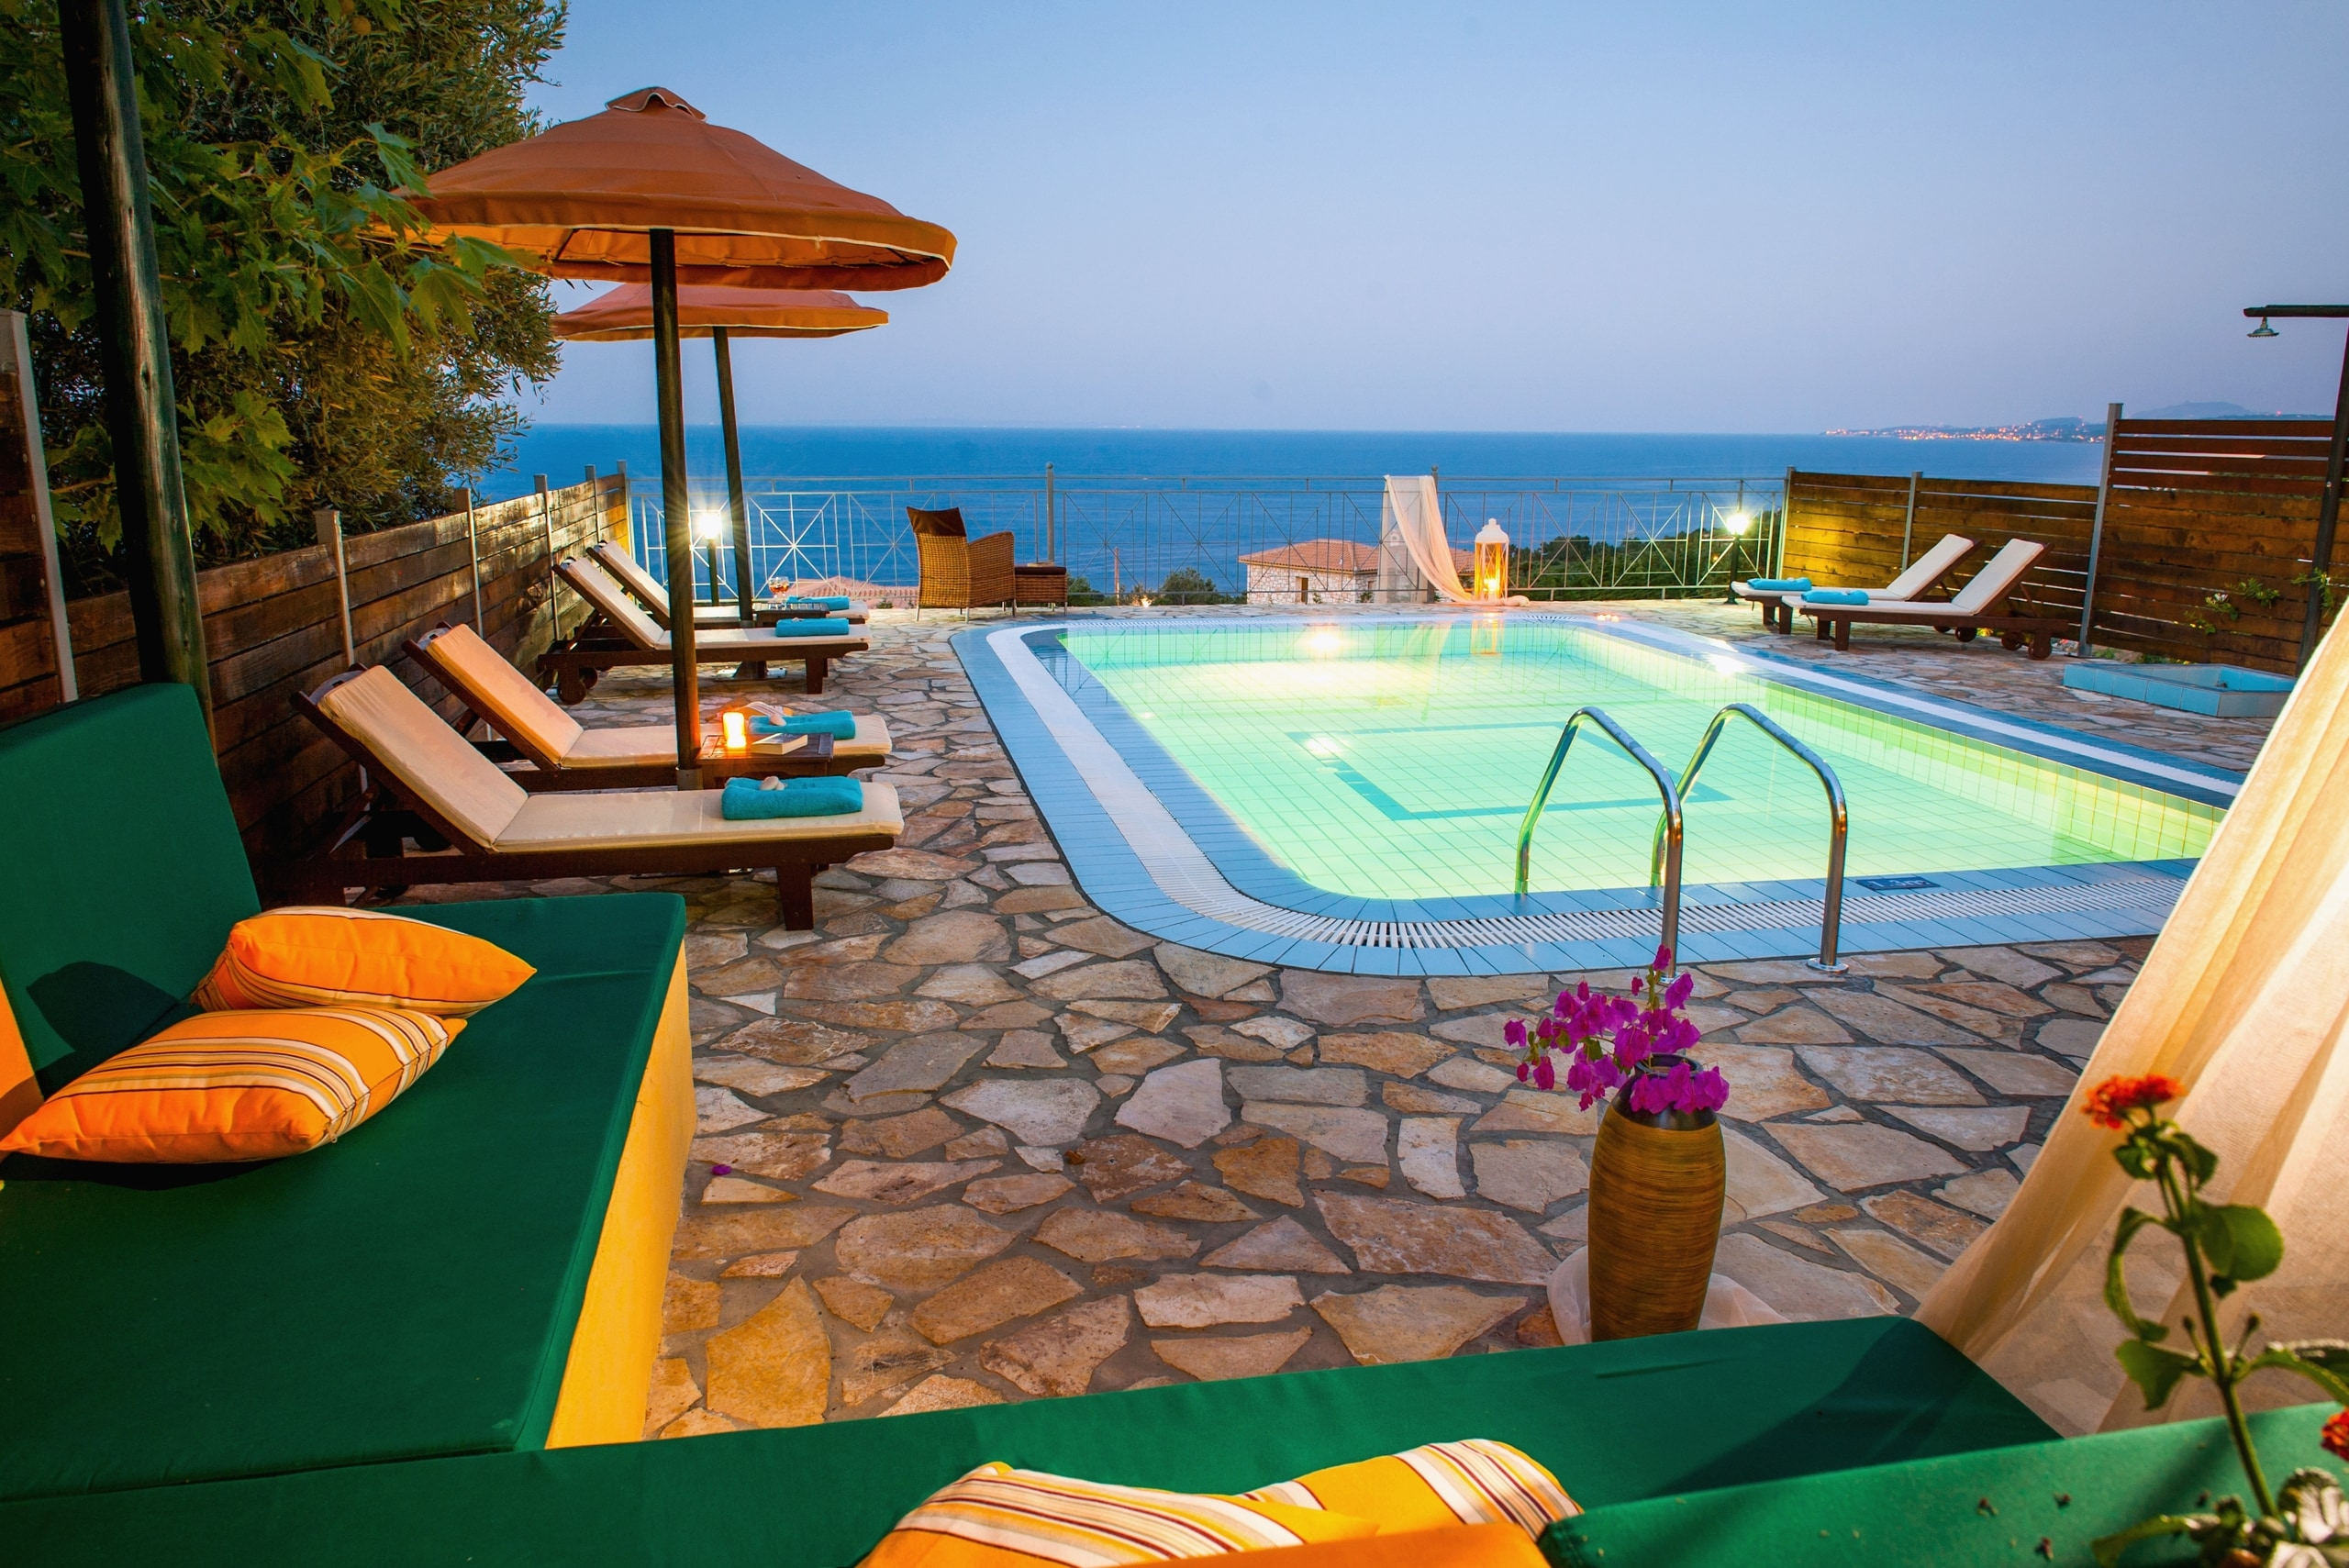 Property Image 2 - Lovely villa with private pool